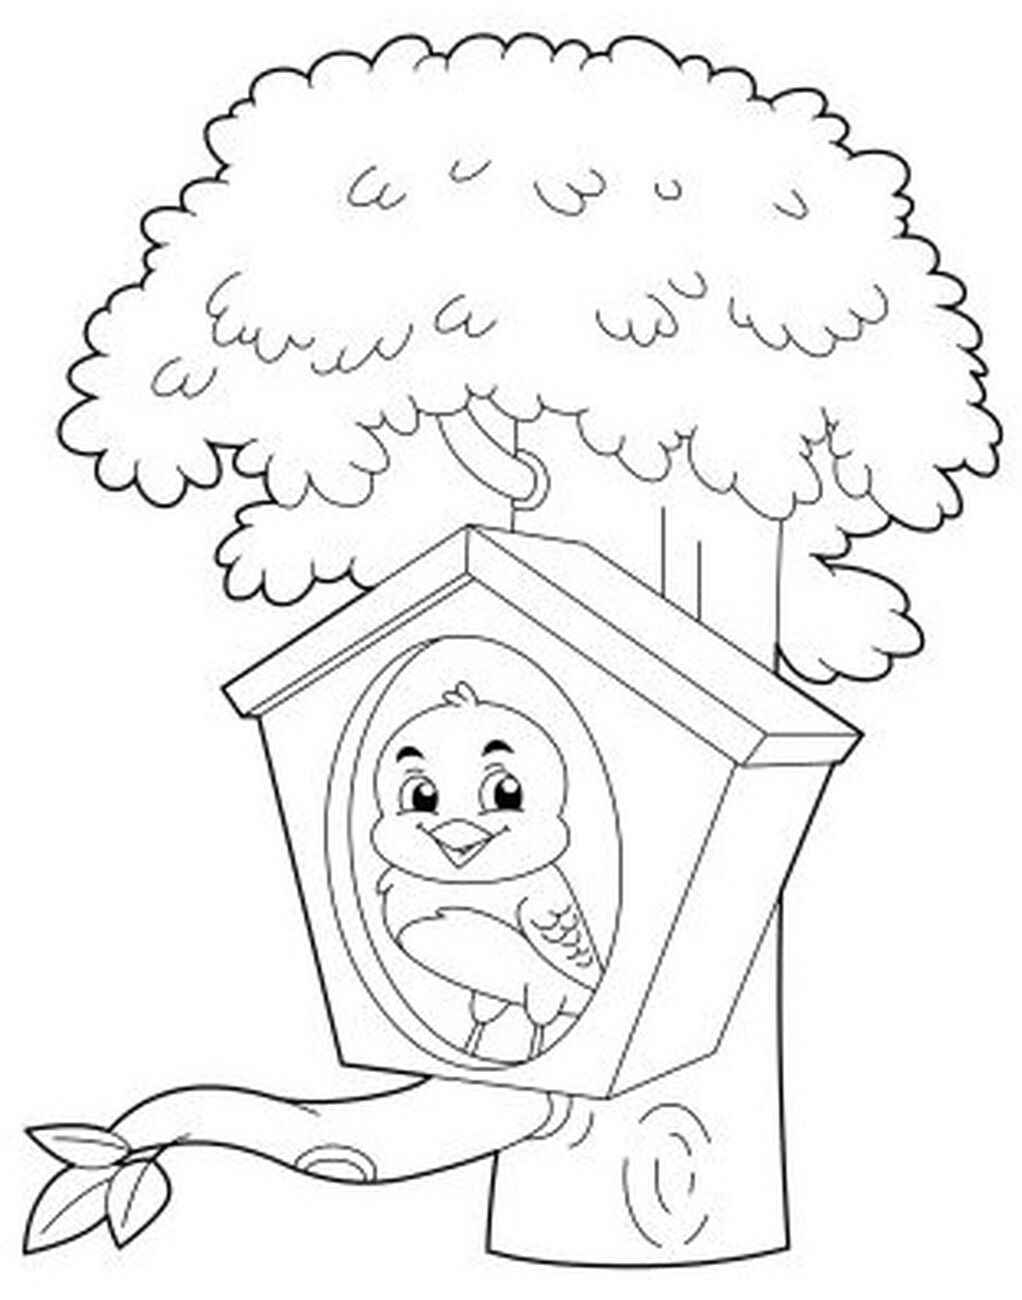 Cute Bird In The Birdhouse Coloring Page